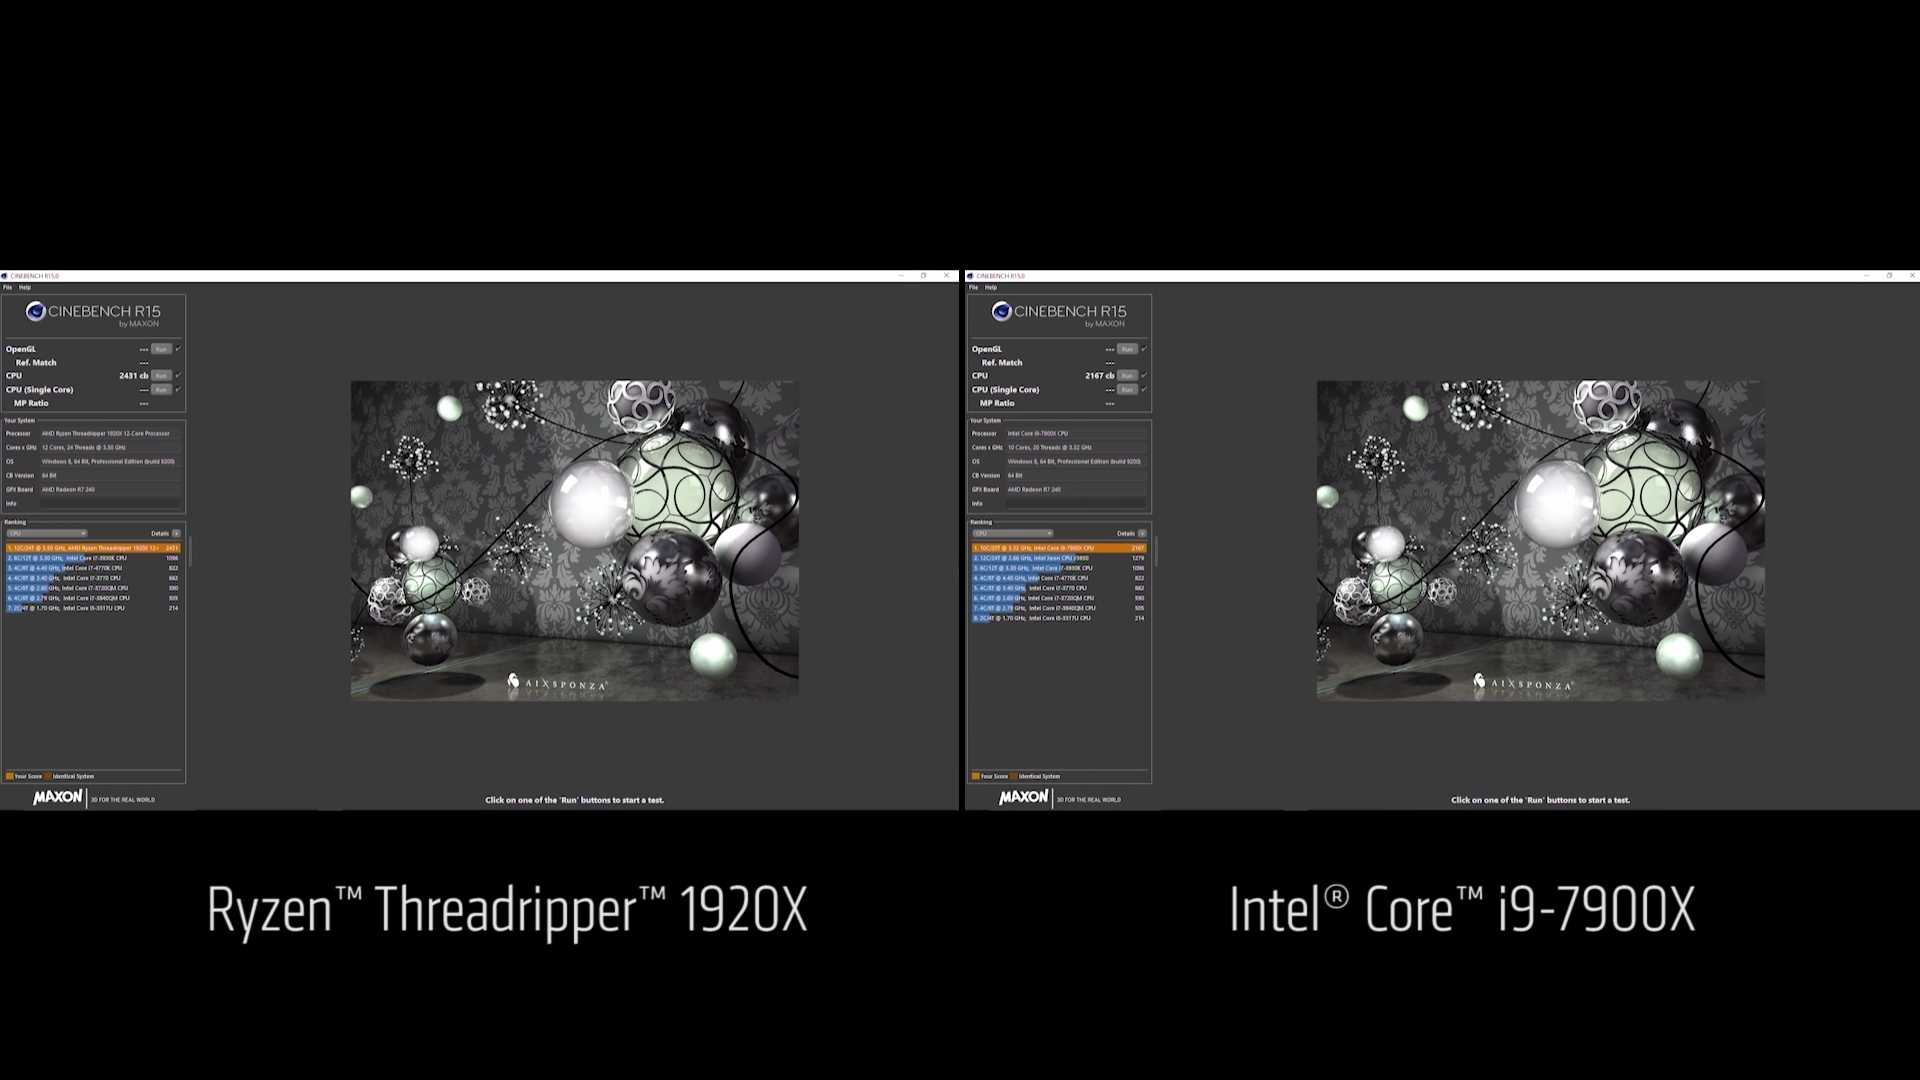 Cinebench R15: Threadripper 1920X vs. Intel Core i9-7900